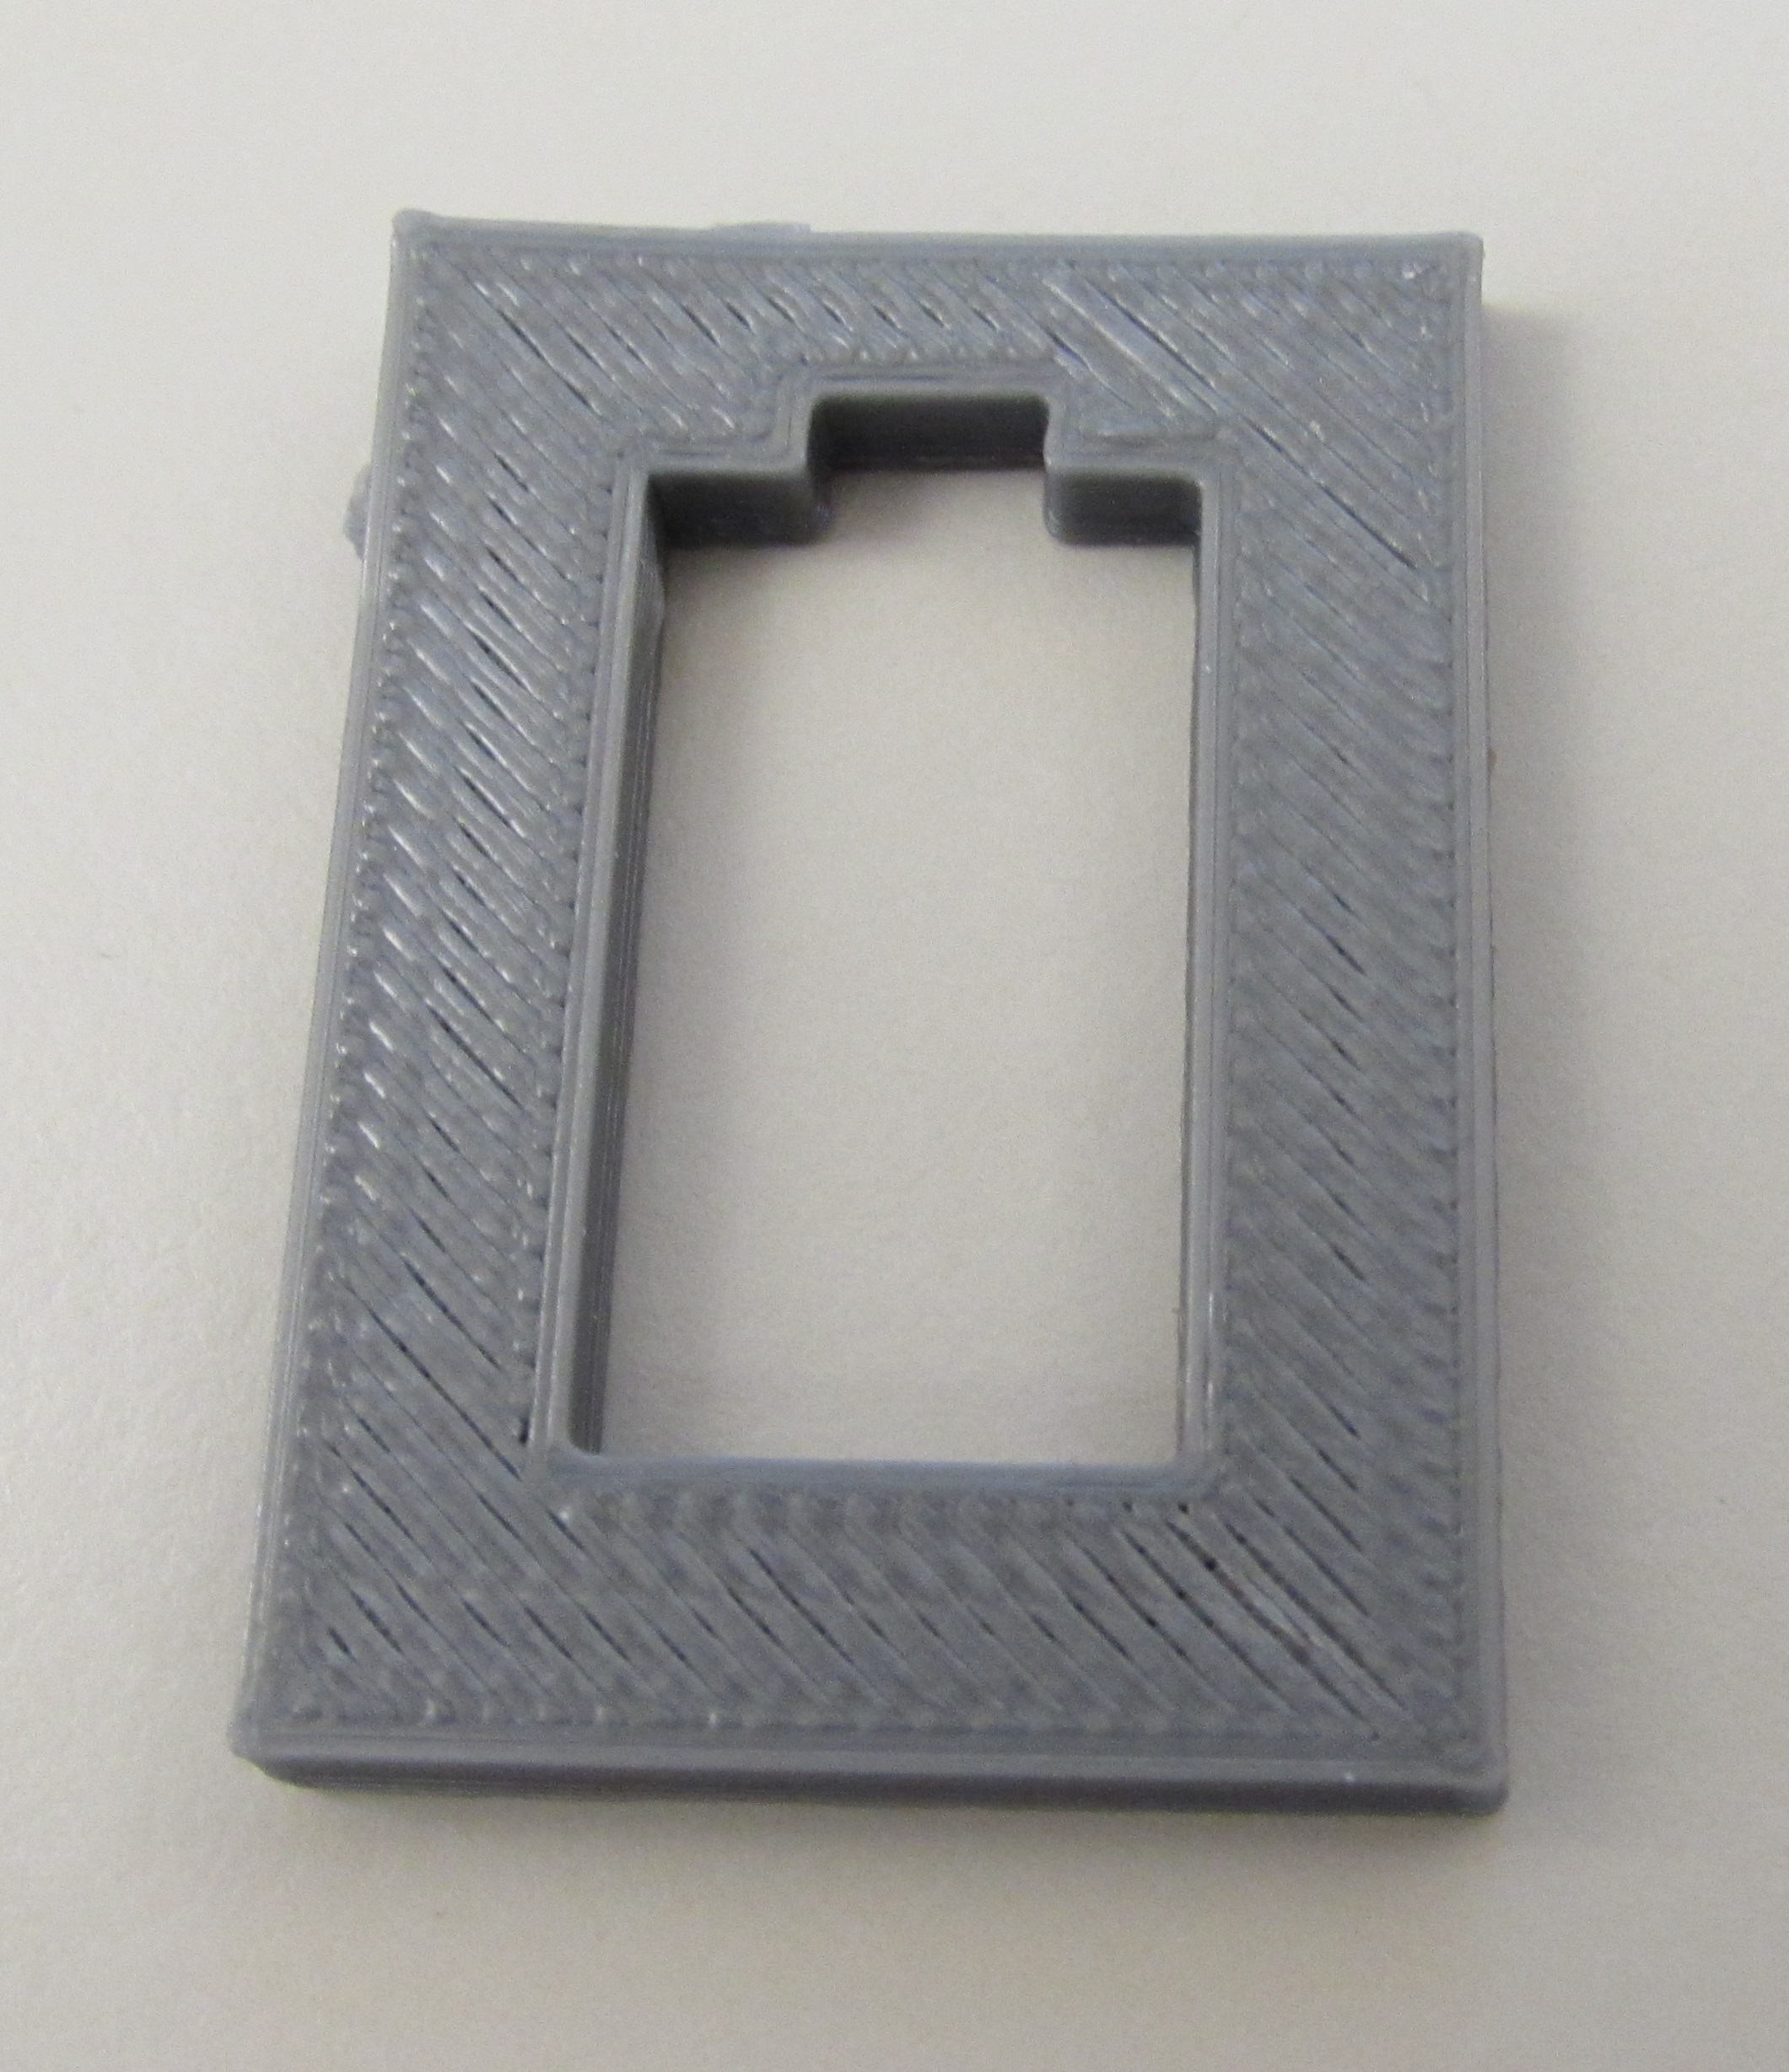 The screw holes lacked walls, making this print not watertight. So no screw holes were printed.